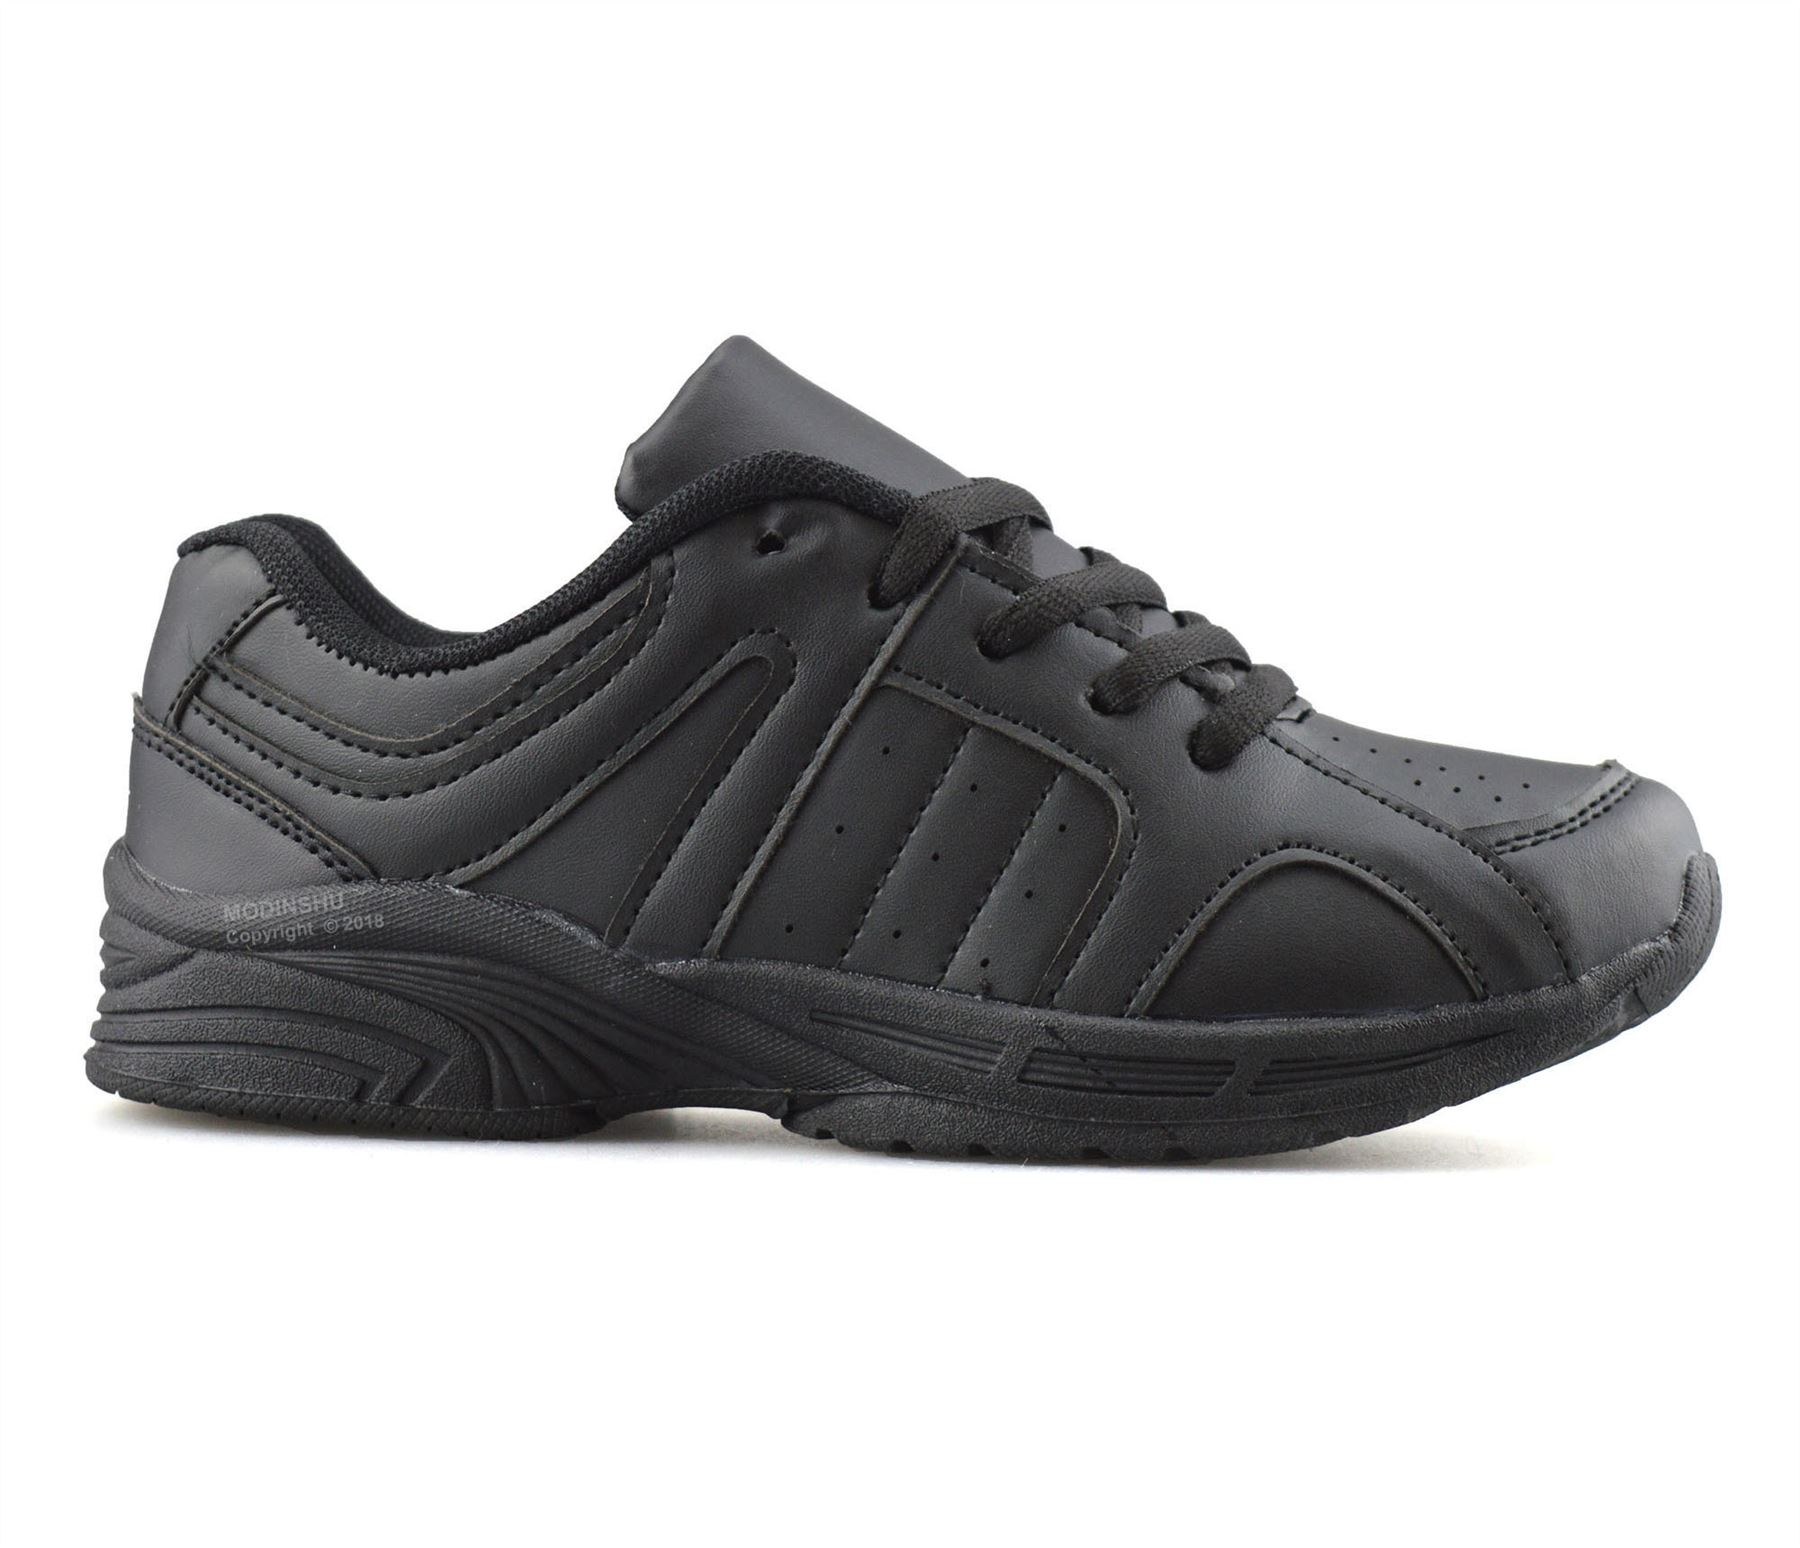 Boys-Kids-Casual-Smart-Formal-Lace-Up-Back-To-School-Sports-Trainers-Shoes-Size thumbnail 9